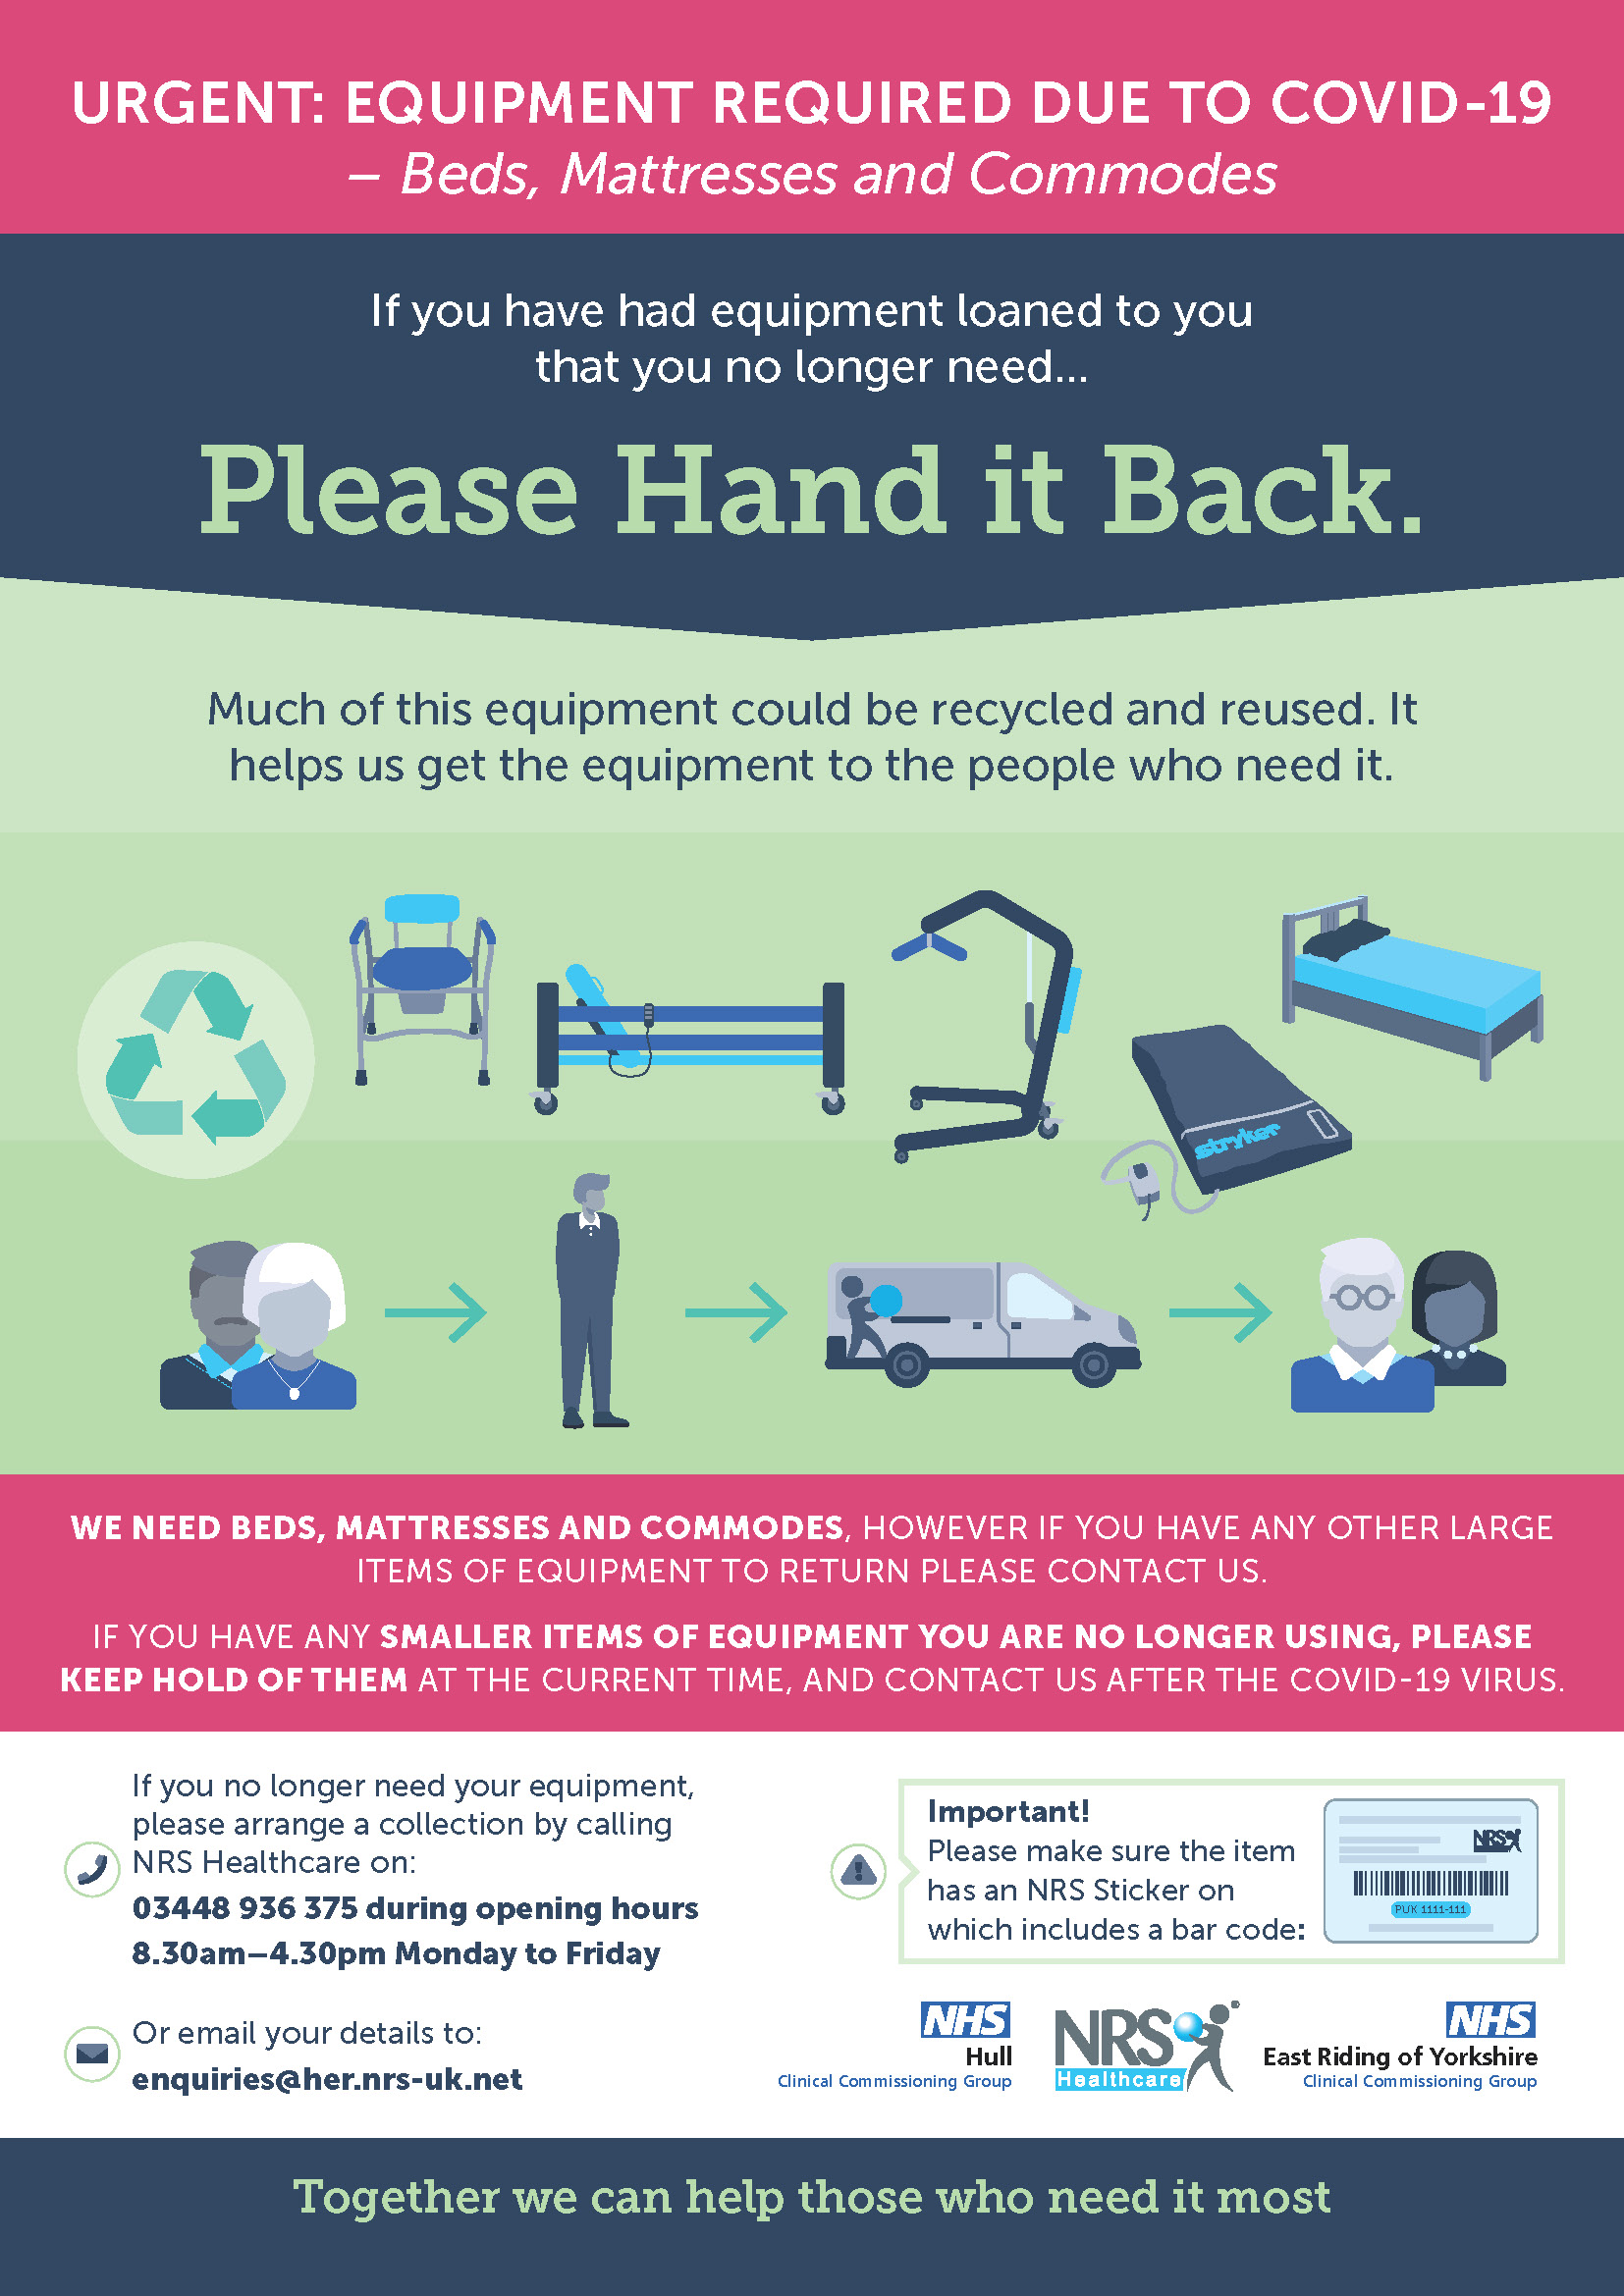 If you have had equipment loaned to you that you no longer need, please return it by contacting NRS Healthcare on 03448 936 375 between 8:30am – 4:30pm Monday to Friday or email enquiries@her.nrs-uk.net.